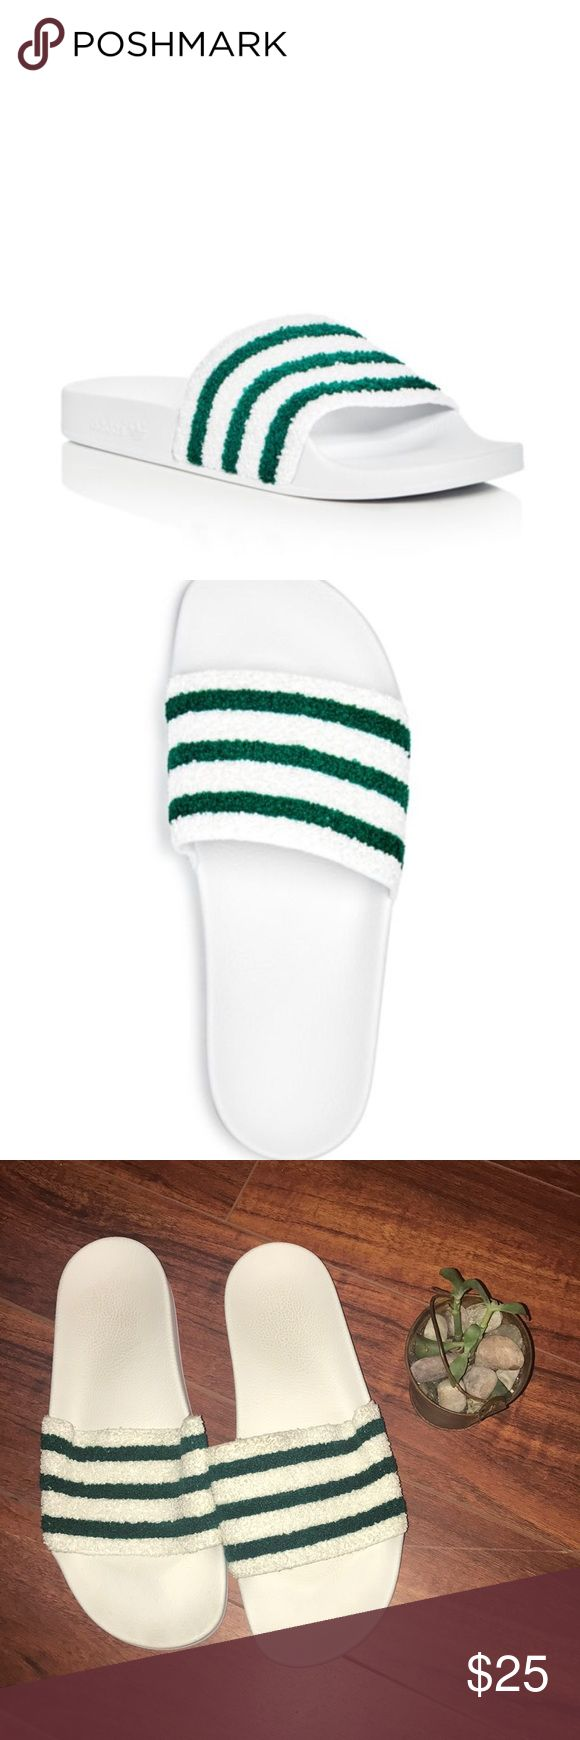 """Adidas Men's Adilette Slide Sandals Size 11 GUC Adidas Adilette Slides, Men's size 11. Great condition aside from slight wearing at the """"top"""" side of the band.  Fits true to size, order your normal size Contoured footbed for comfort Slip on Stripe detailing at strap Quick dry lining Logo at side Synthetic fabric upper, synthetic fabric lining, rubber sole Imported adidas Shoes Sandals & Flip-Flops"""